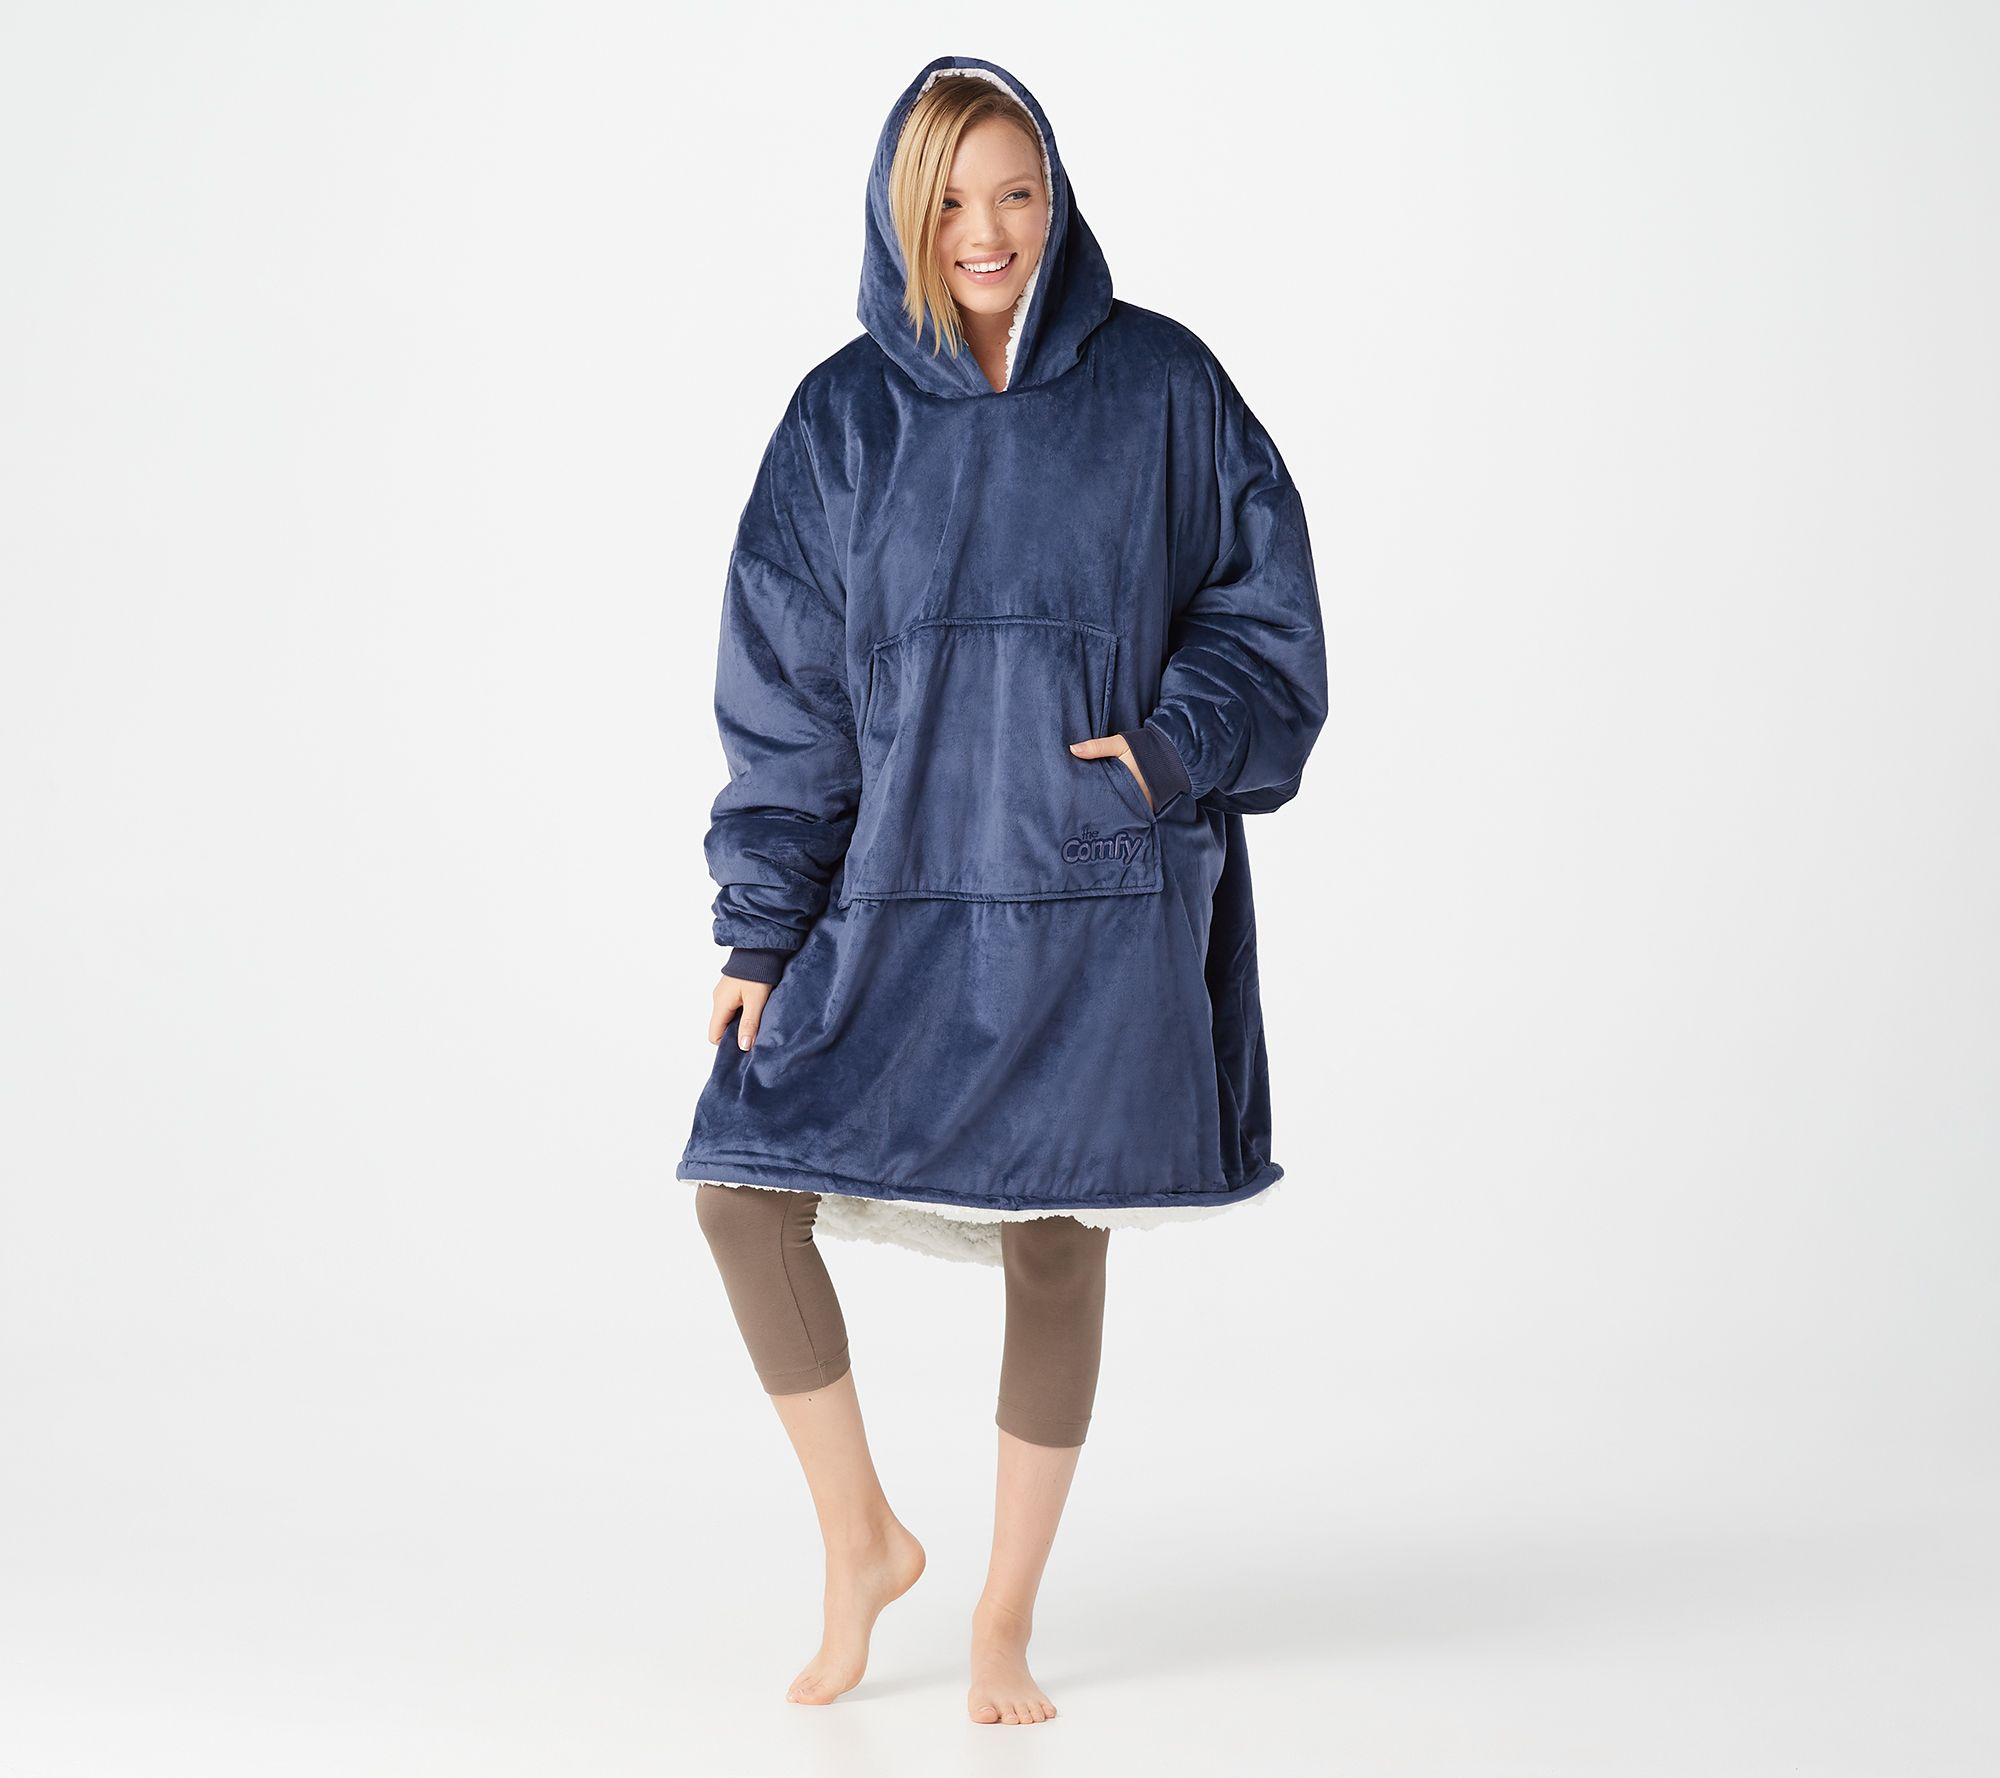 Snuggie Kopen The Comfy Original Oversized Blanket Sweatshirt Qvc